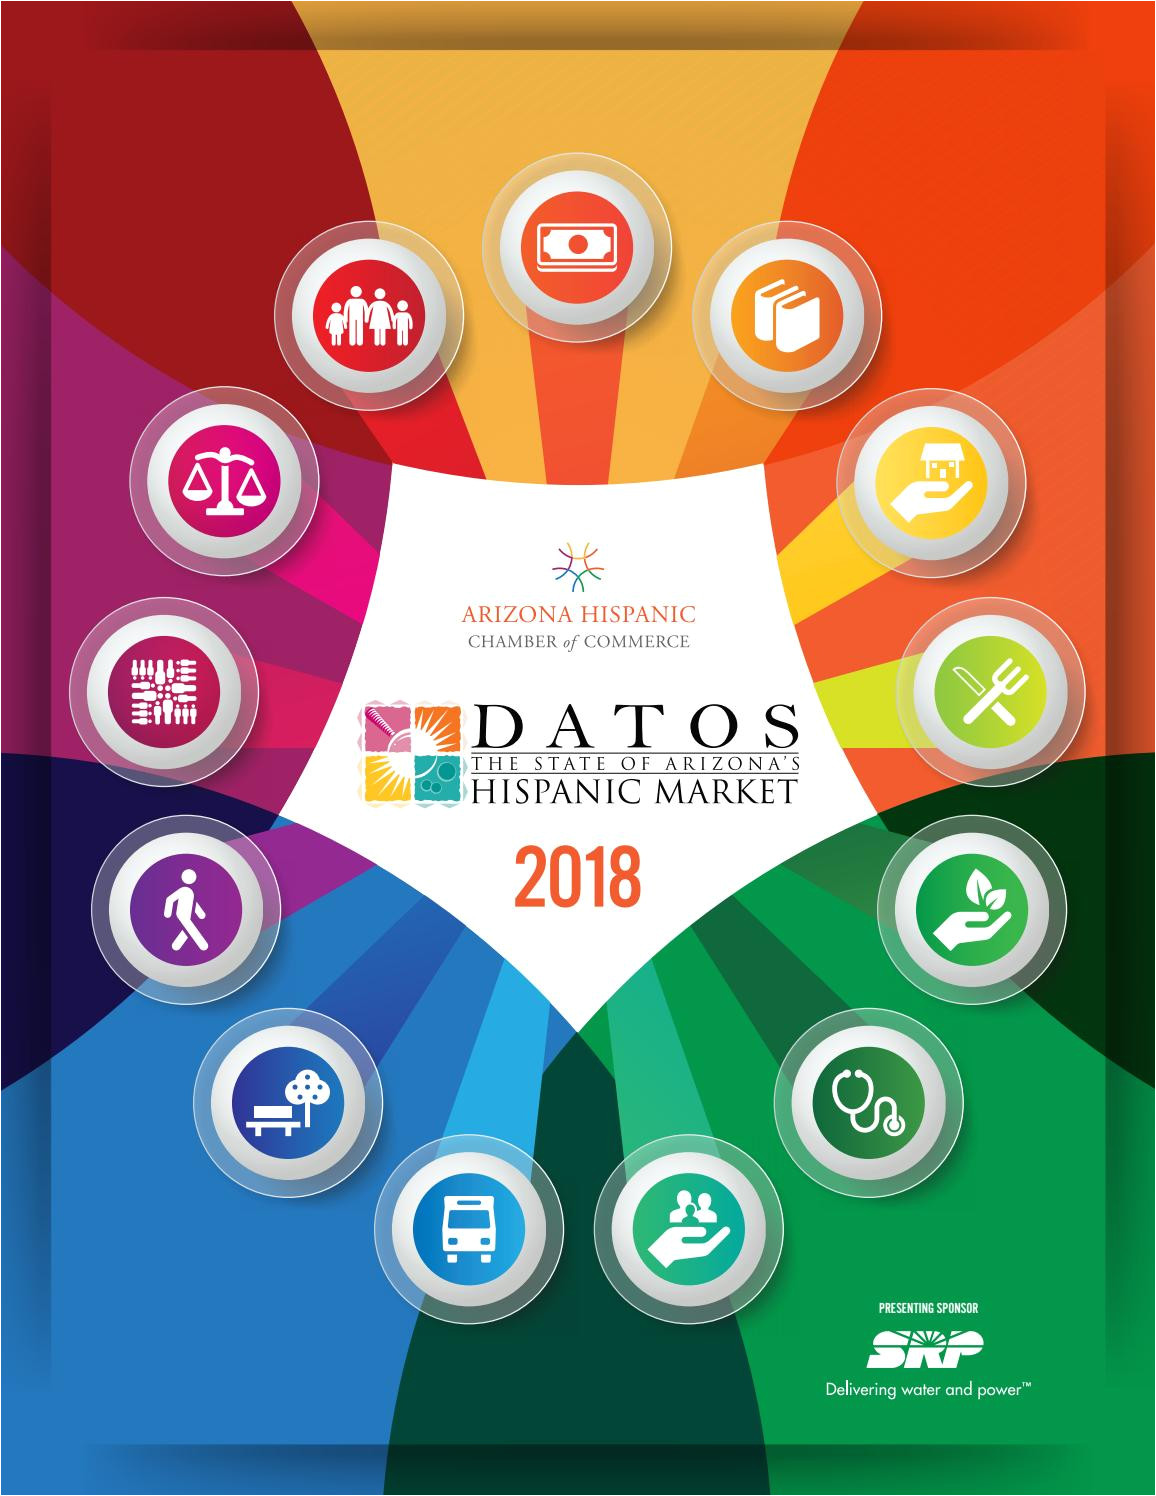 datos the state of arizona s hispanic market 2018 by arizona hispanic chamber of commerce issuu